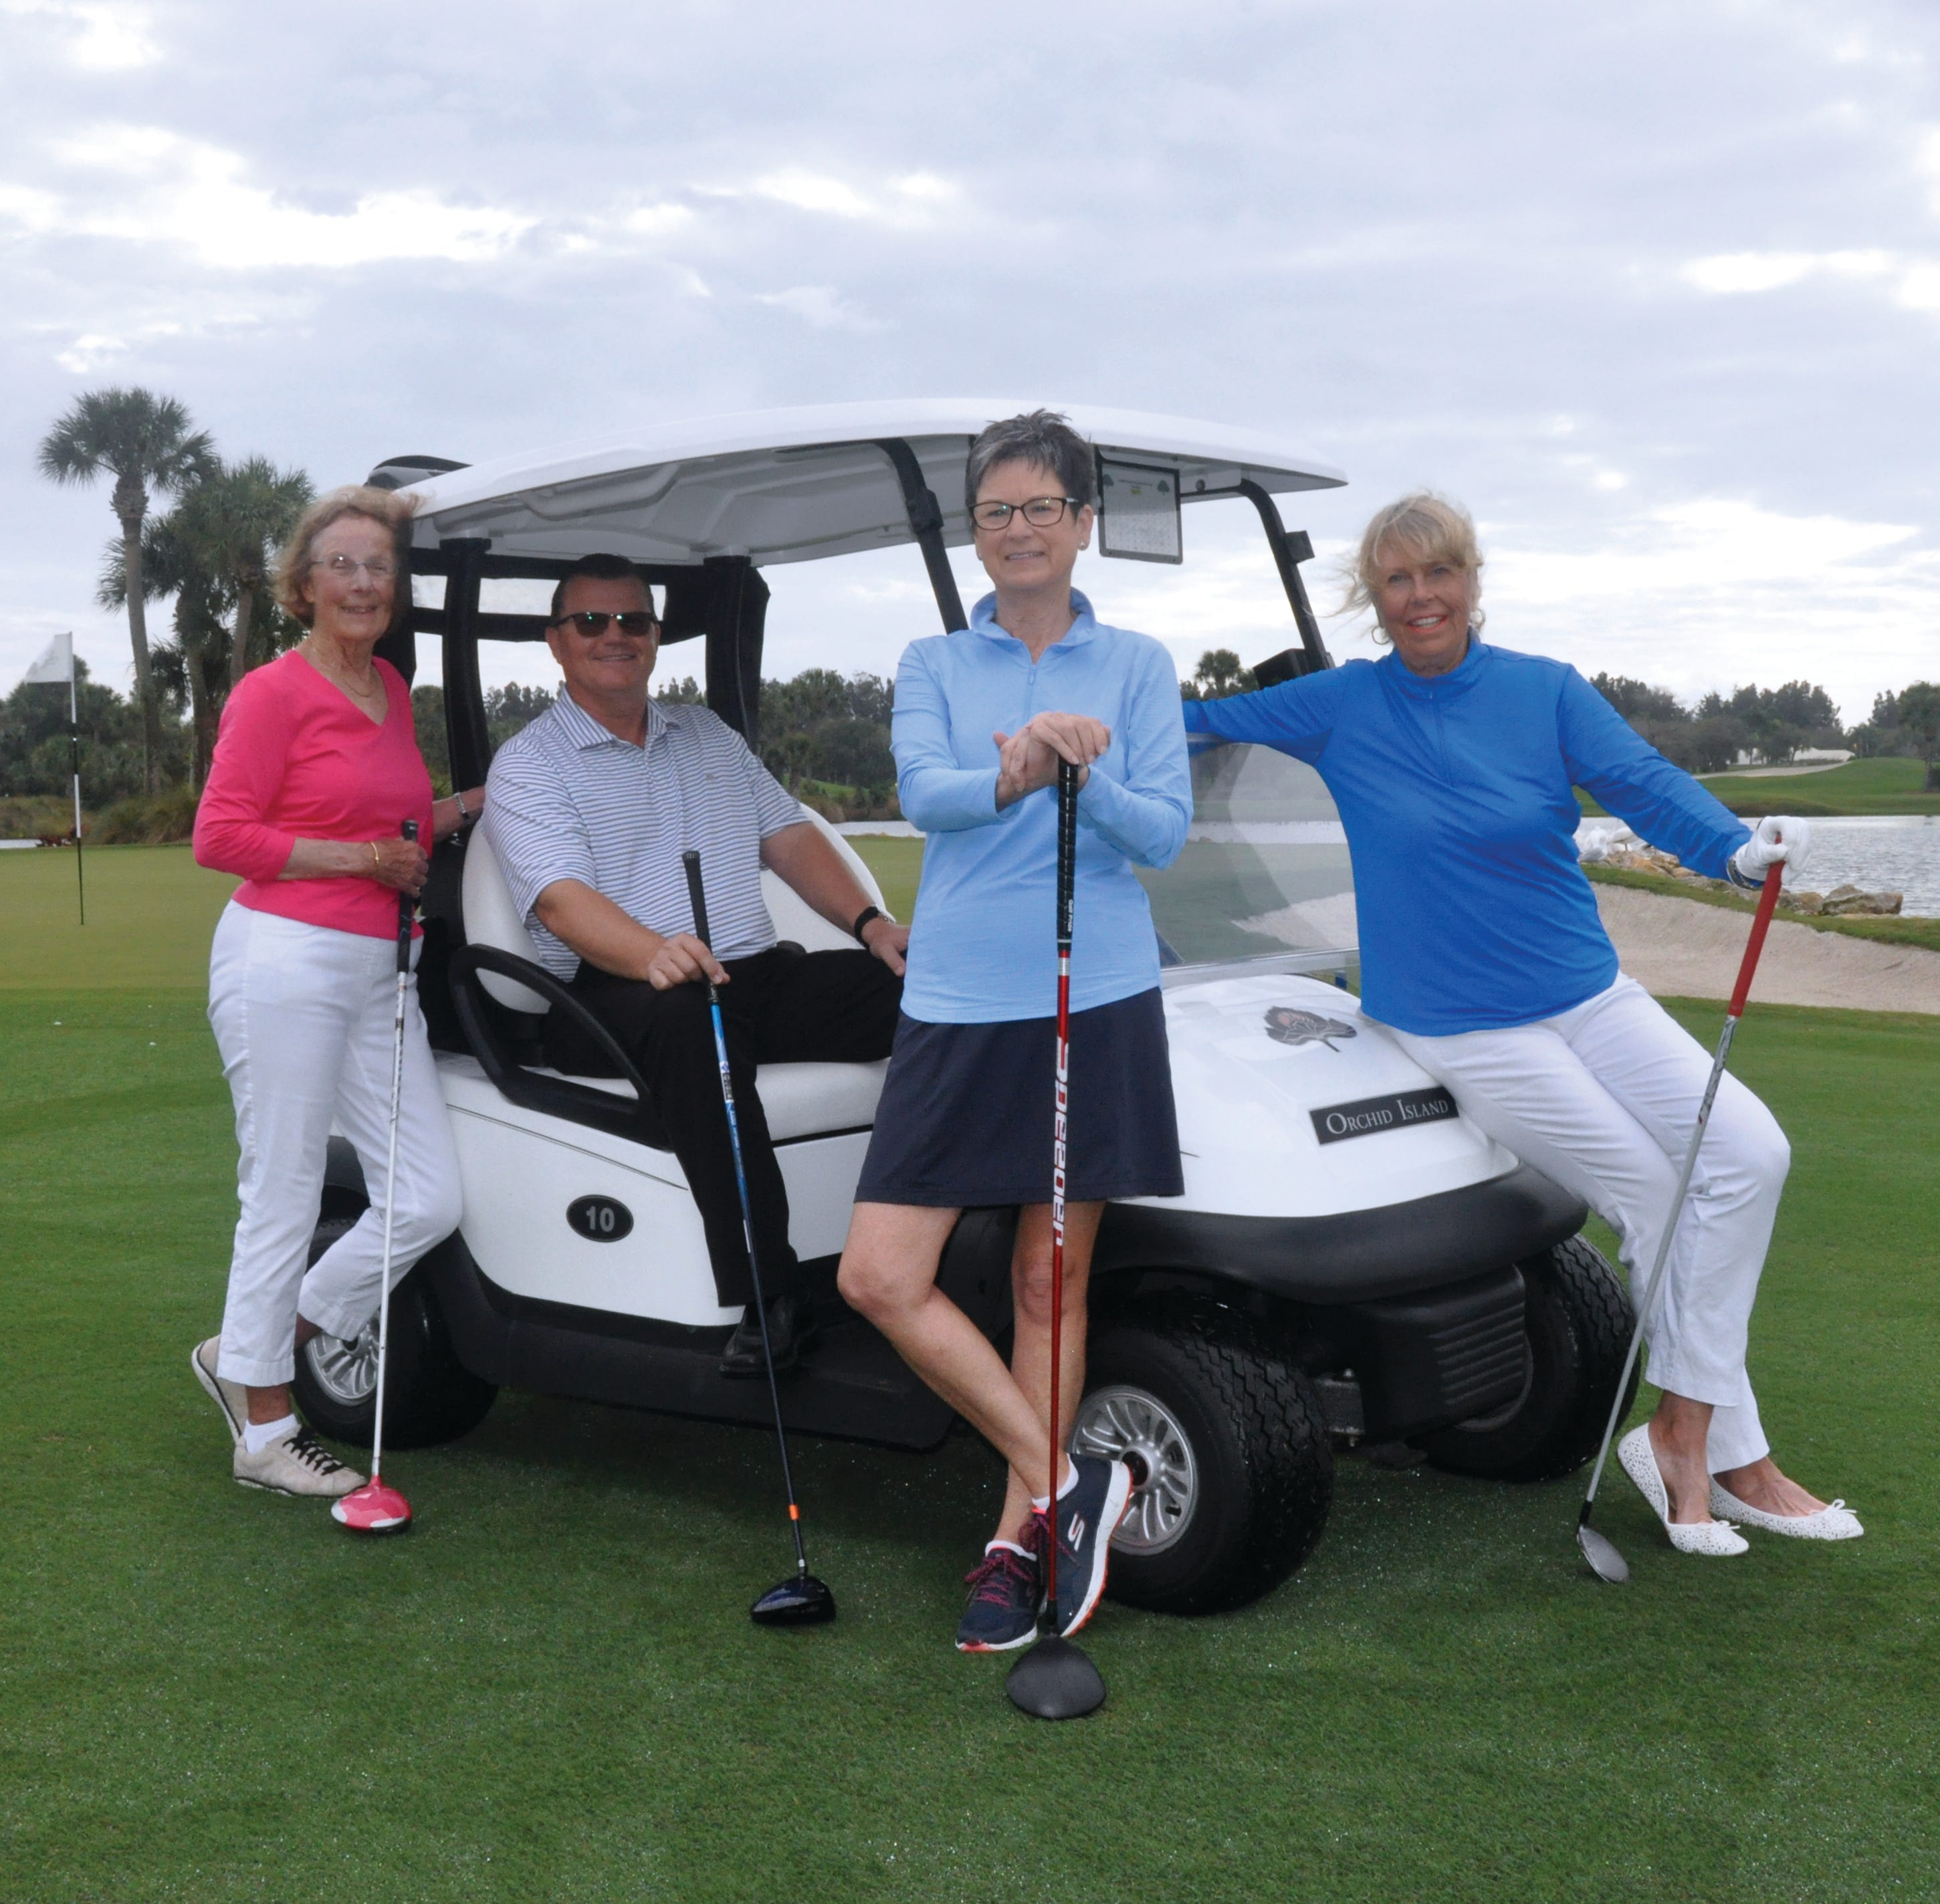 VNA & Hospice Foundation Golf-A-Thon gearing up to be a hole-in-one event